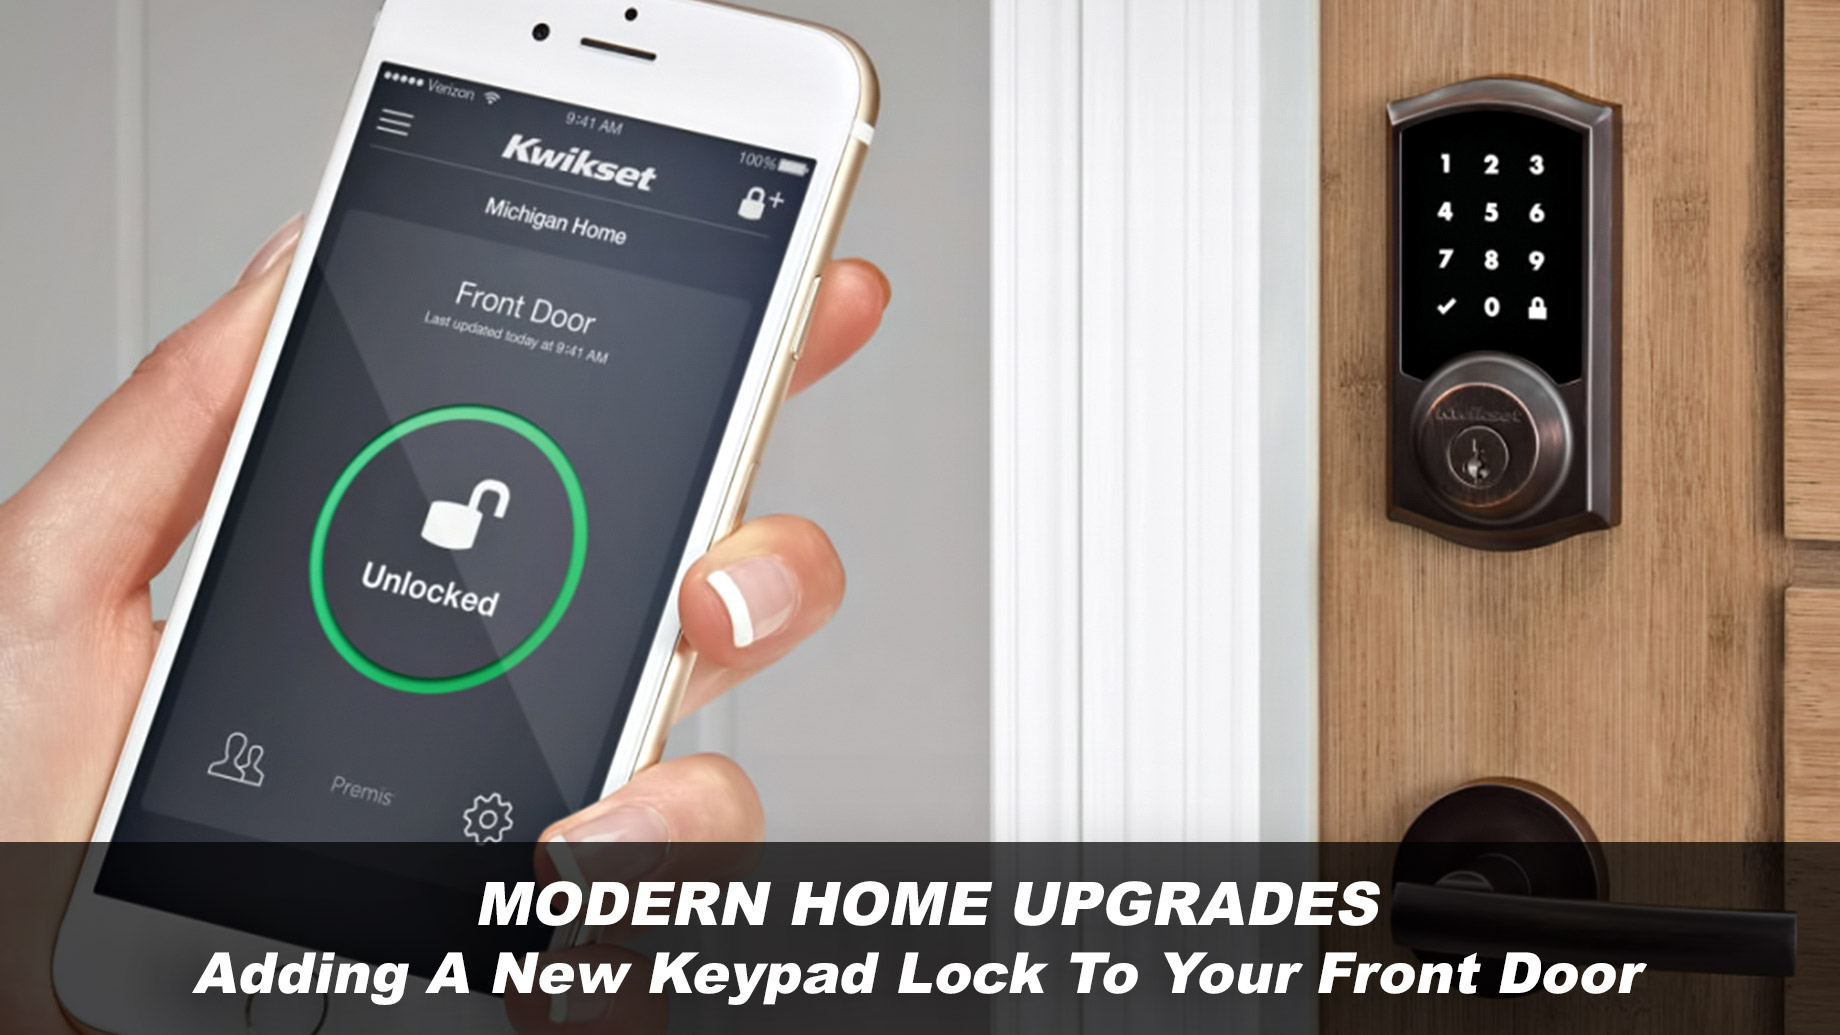 Modern Home Upgrades - Adding A New Keypad Lock To Your Front Door